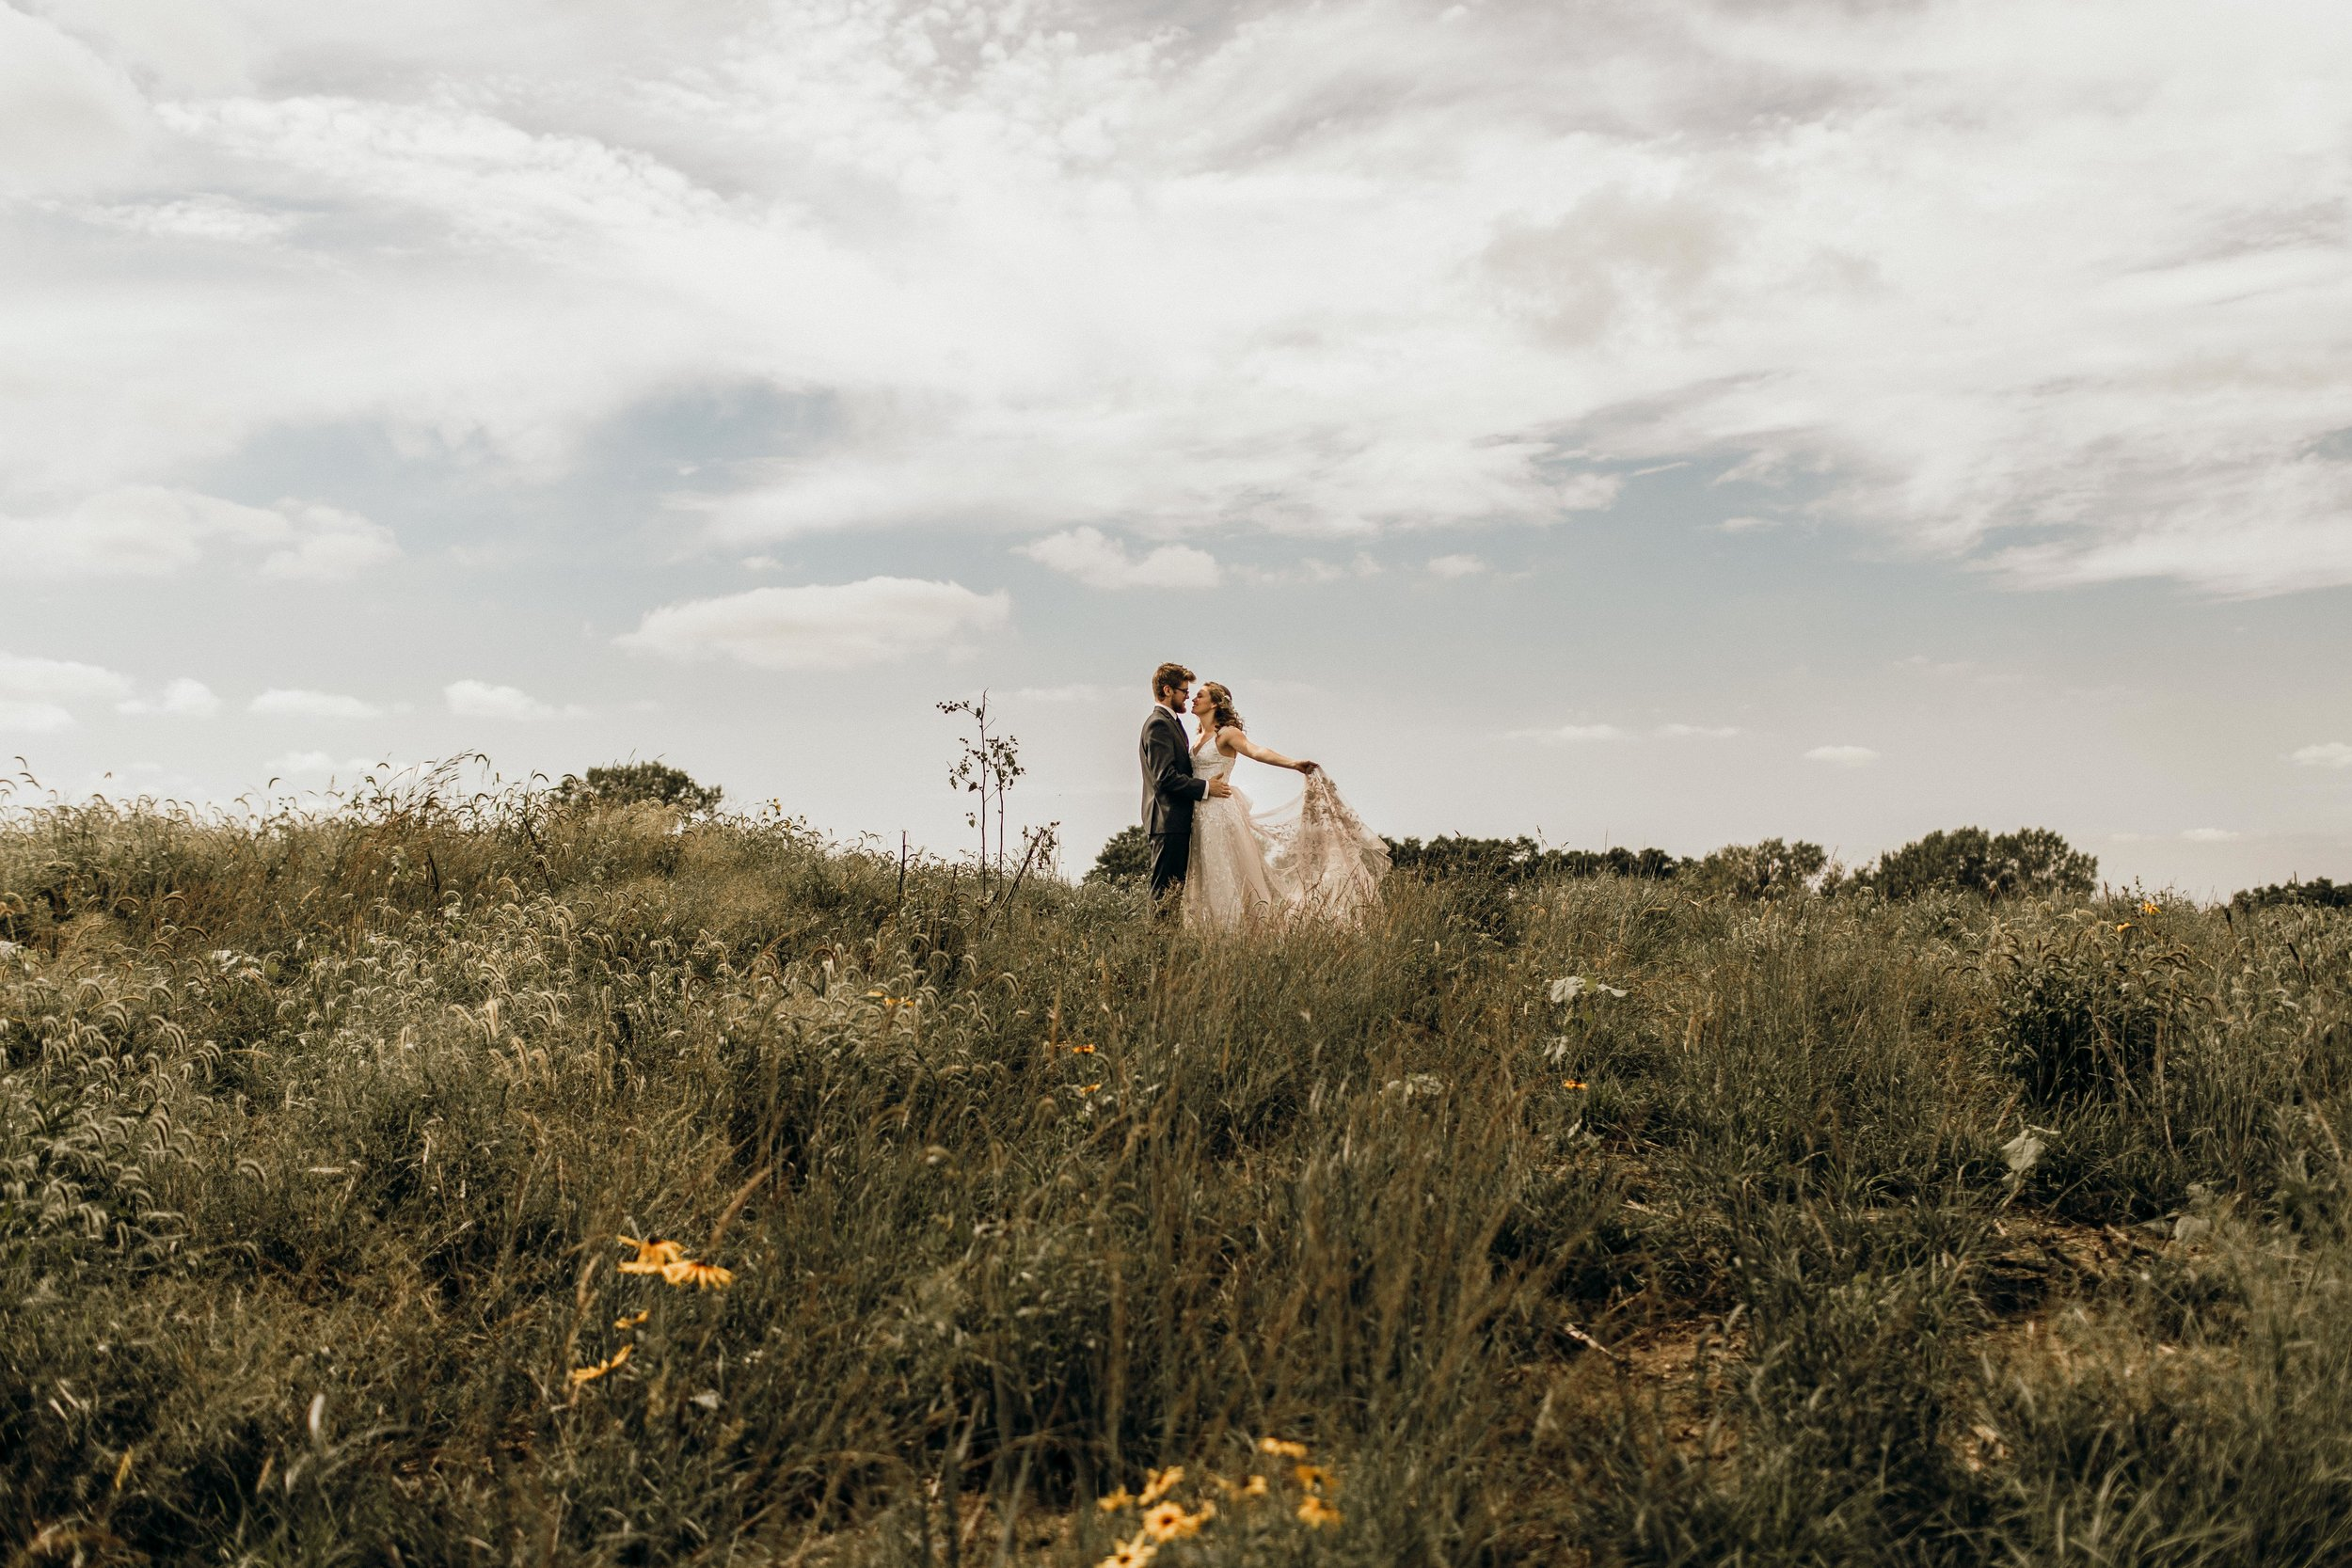 Dawn McClannan Photography_Destination_Wedding Photographer_dmacphoto.net_Colorado-95.jpg